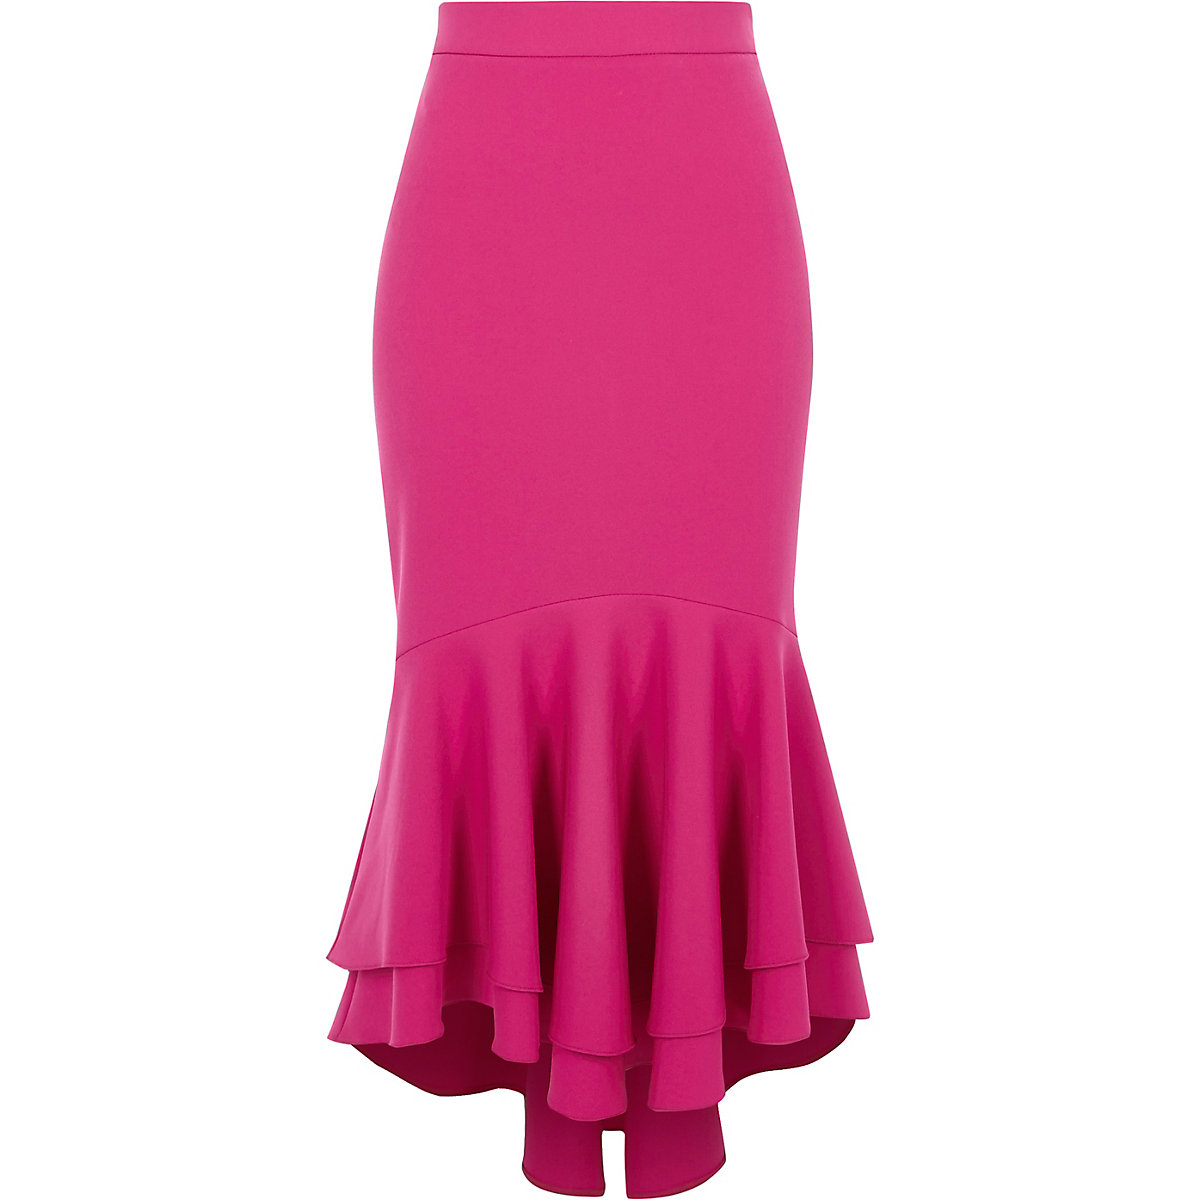 Pink tiered frill fishtail pencil skirt